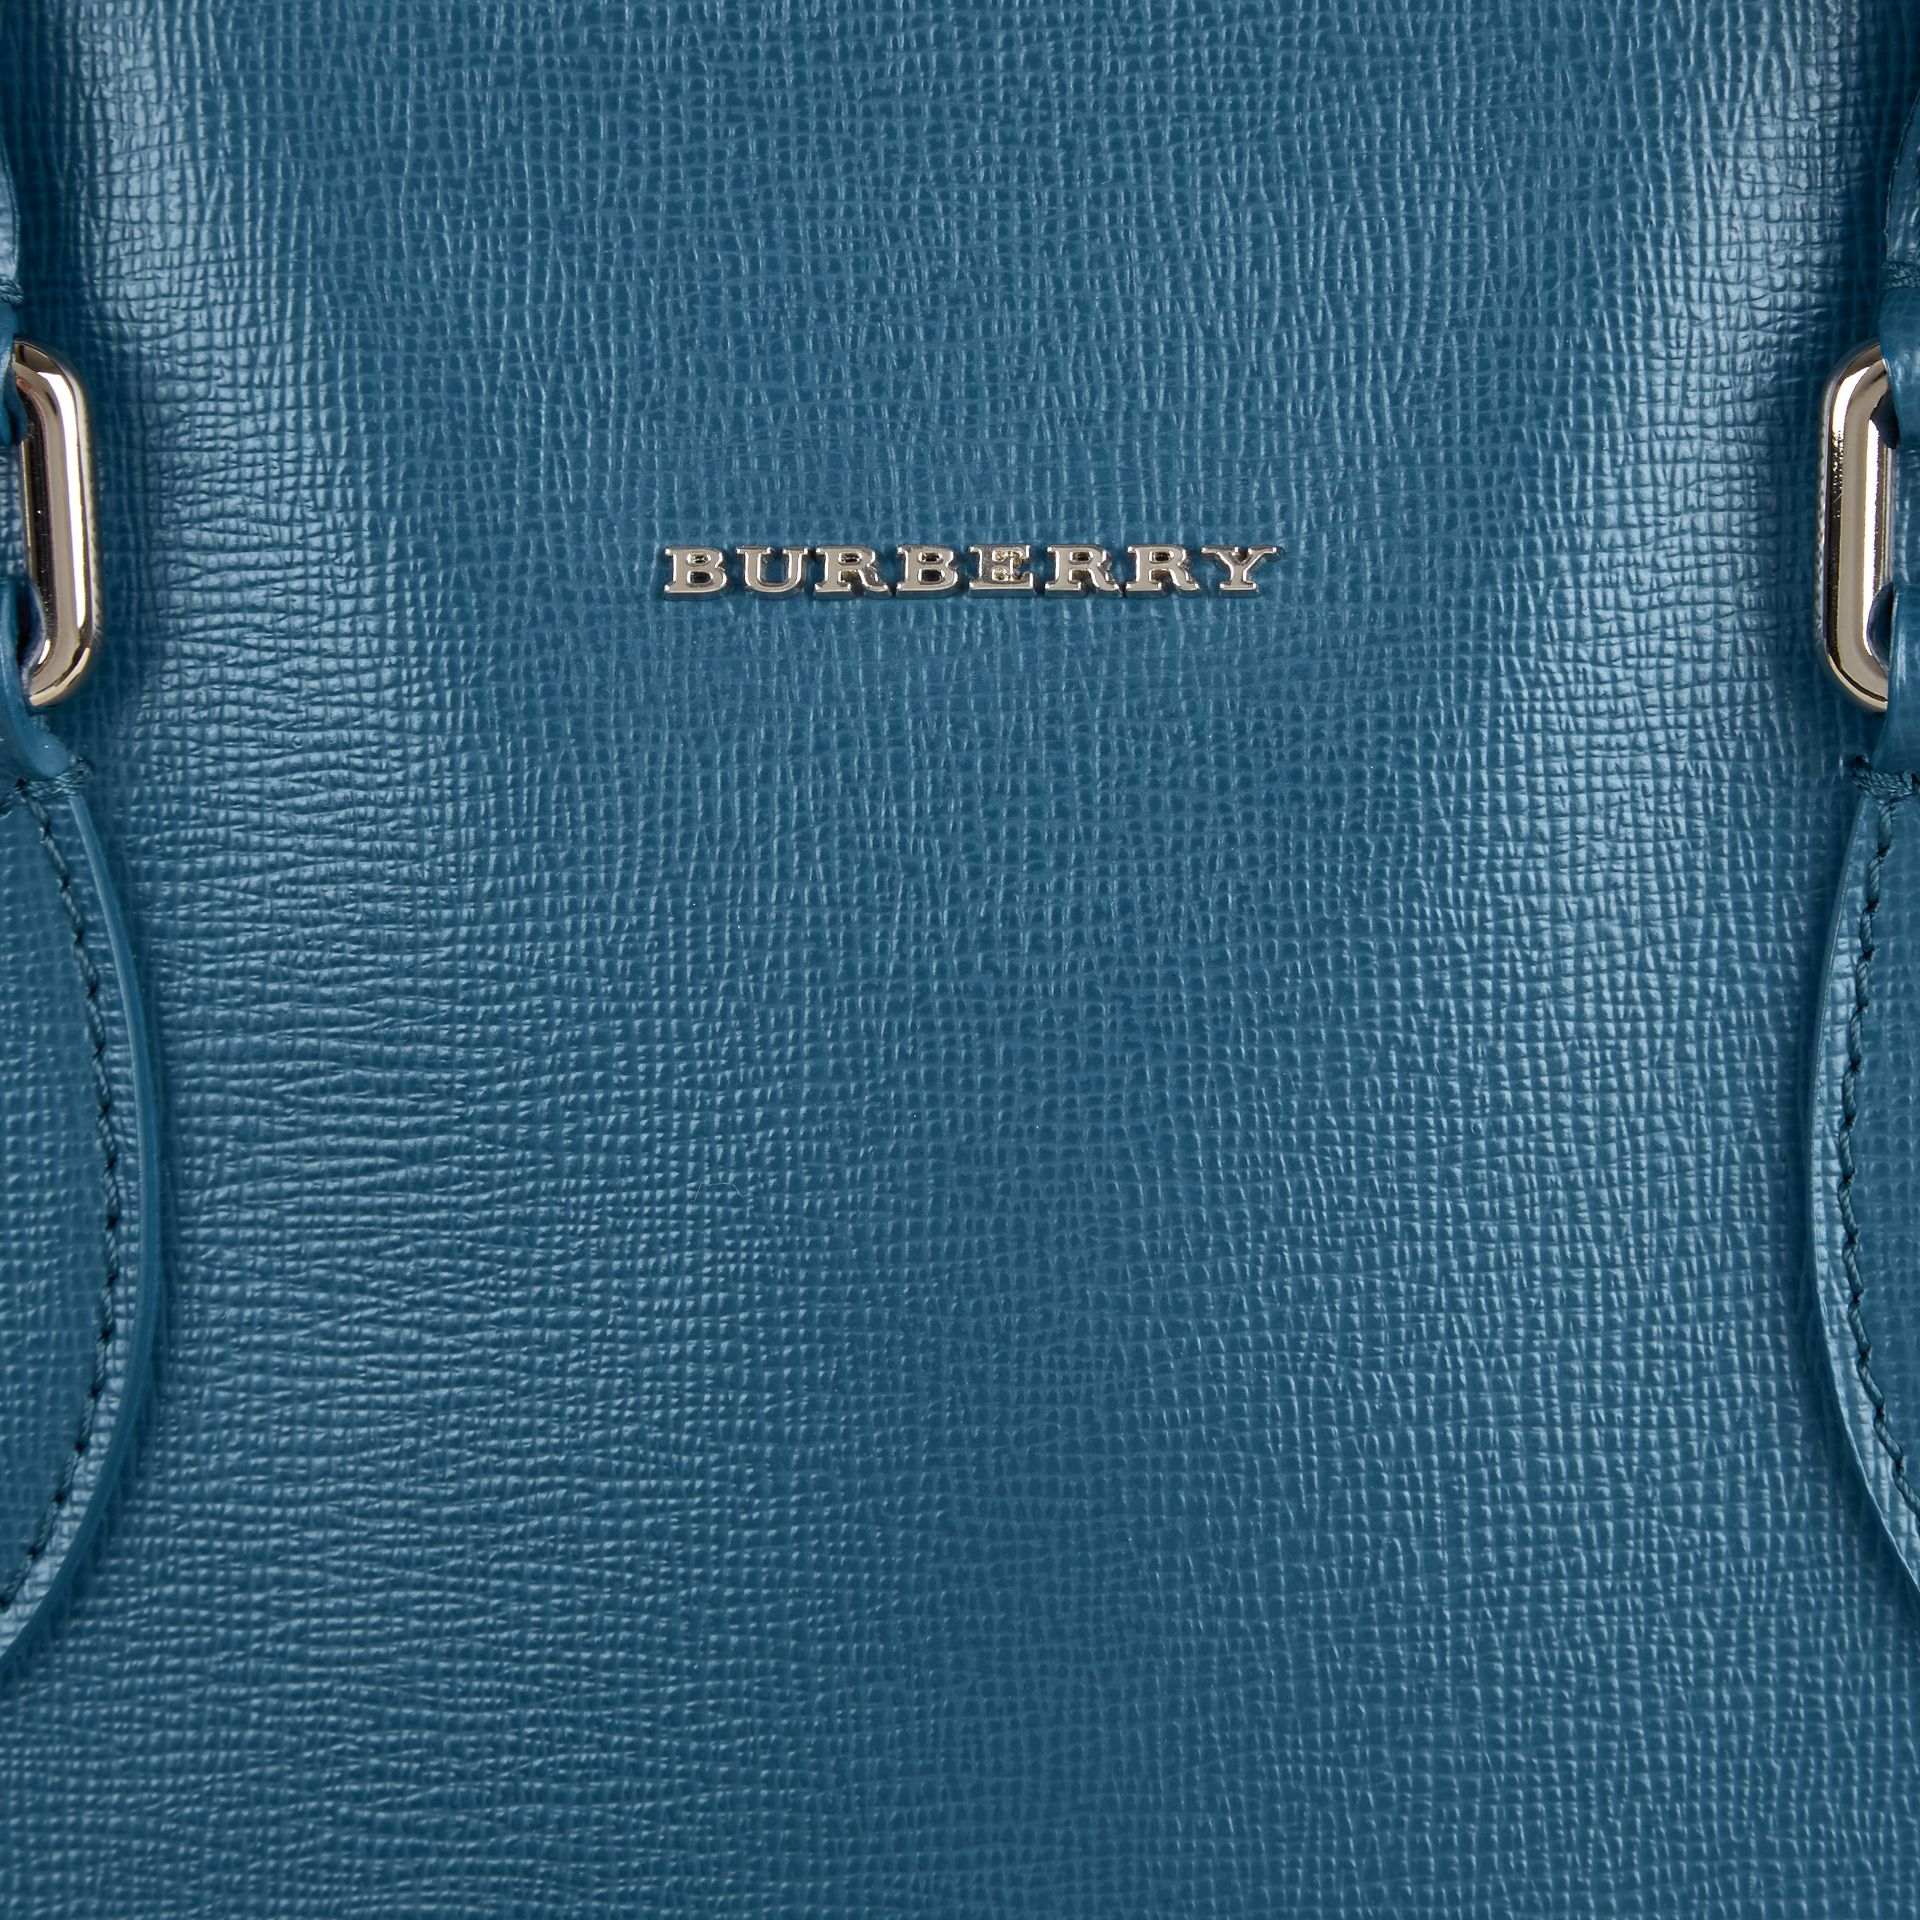 London Leather Tote Bag in Mineral Blue - Men | Burberry - gallery image 2